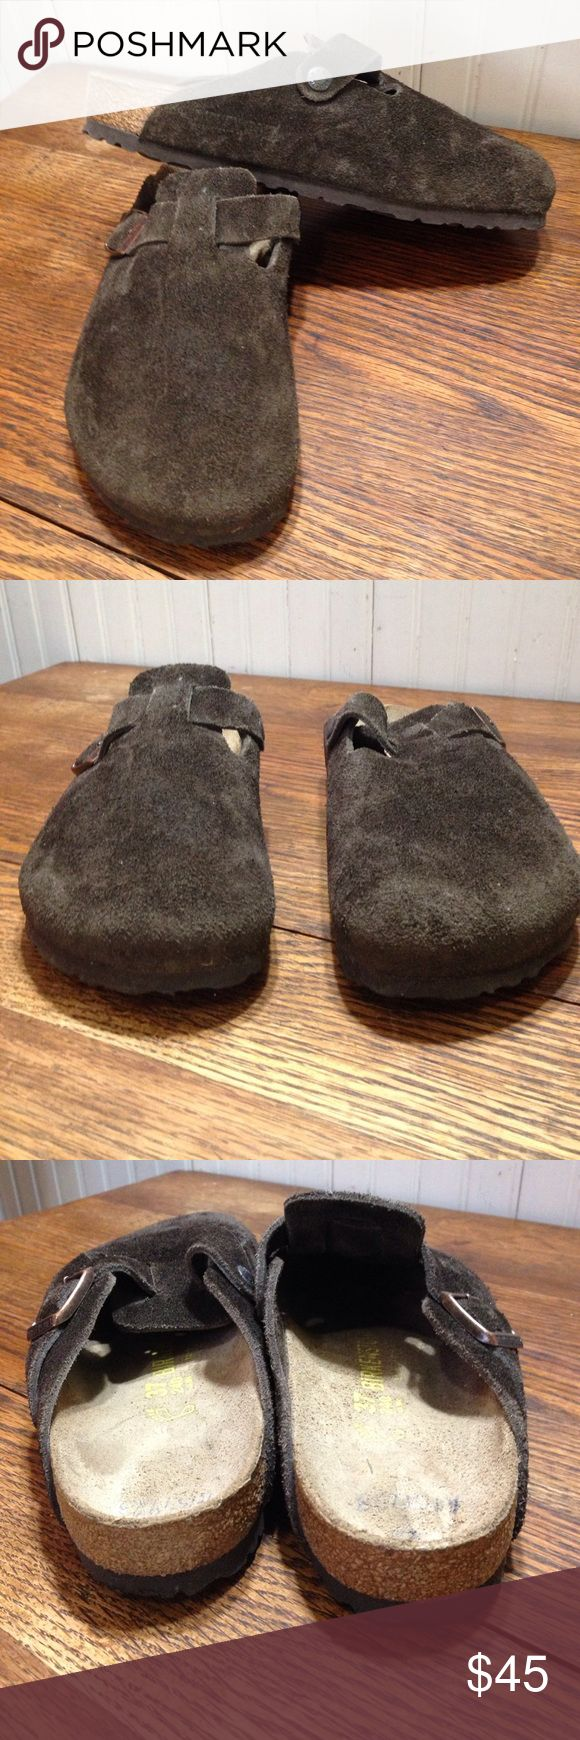 Birkenstock brown women size 6 men's size 4 Birkenstock brown women size 6 men's size 4, 37 is the European size, pen writing on inside heels- not noticeable when on otherwise these are in excellent condition Birkenstock Shoes